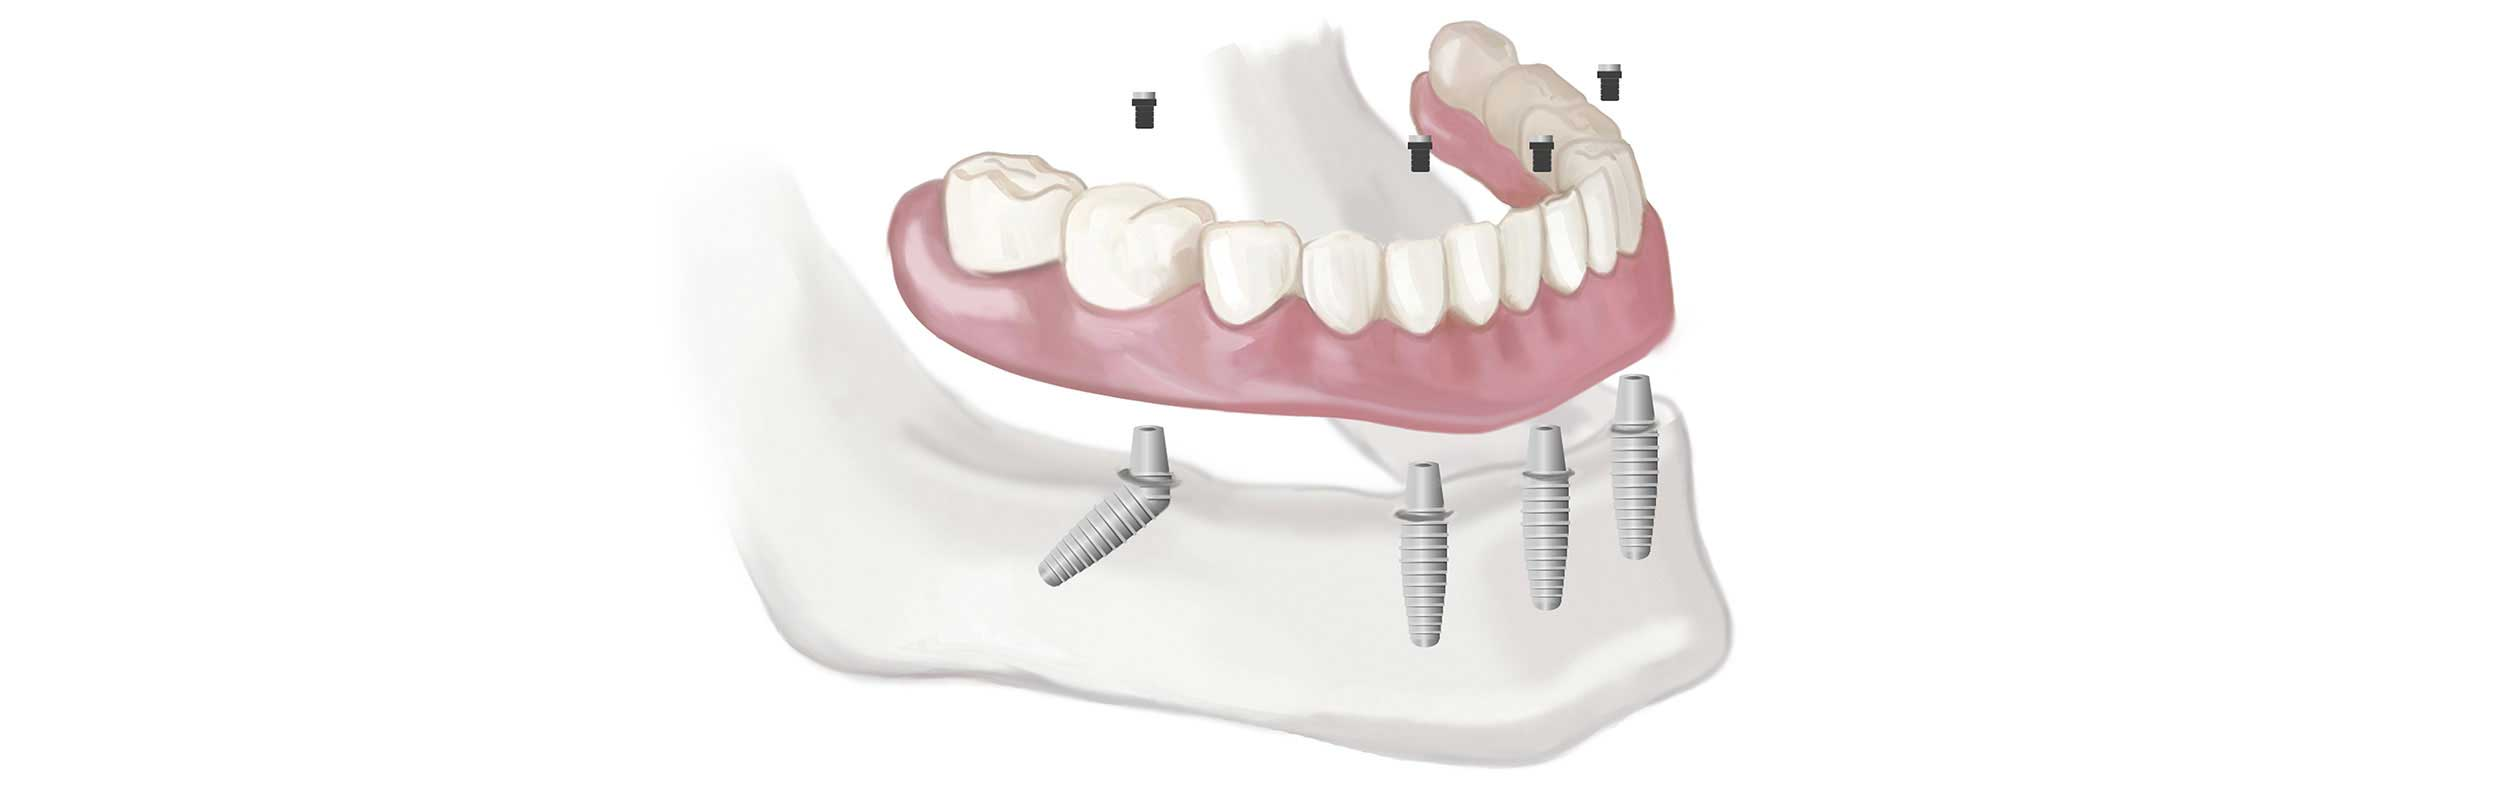 All-on-4 dental implants in Nashville, TN